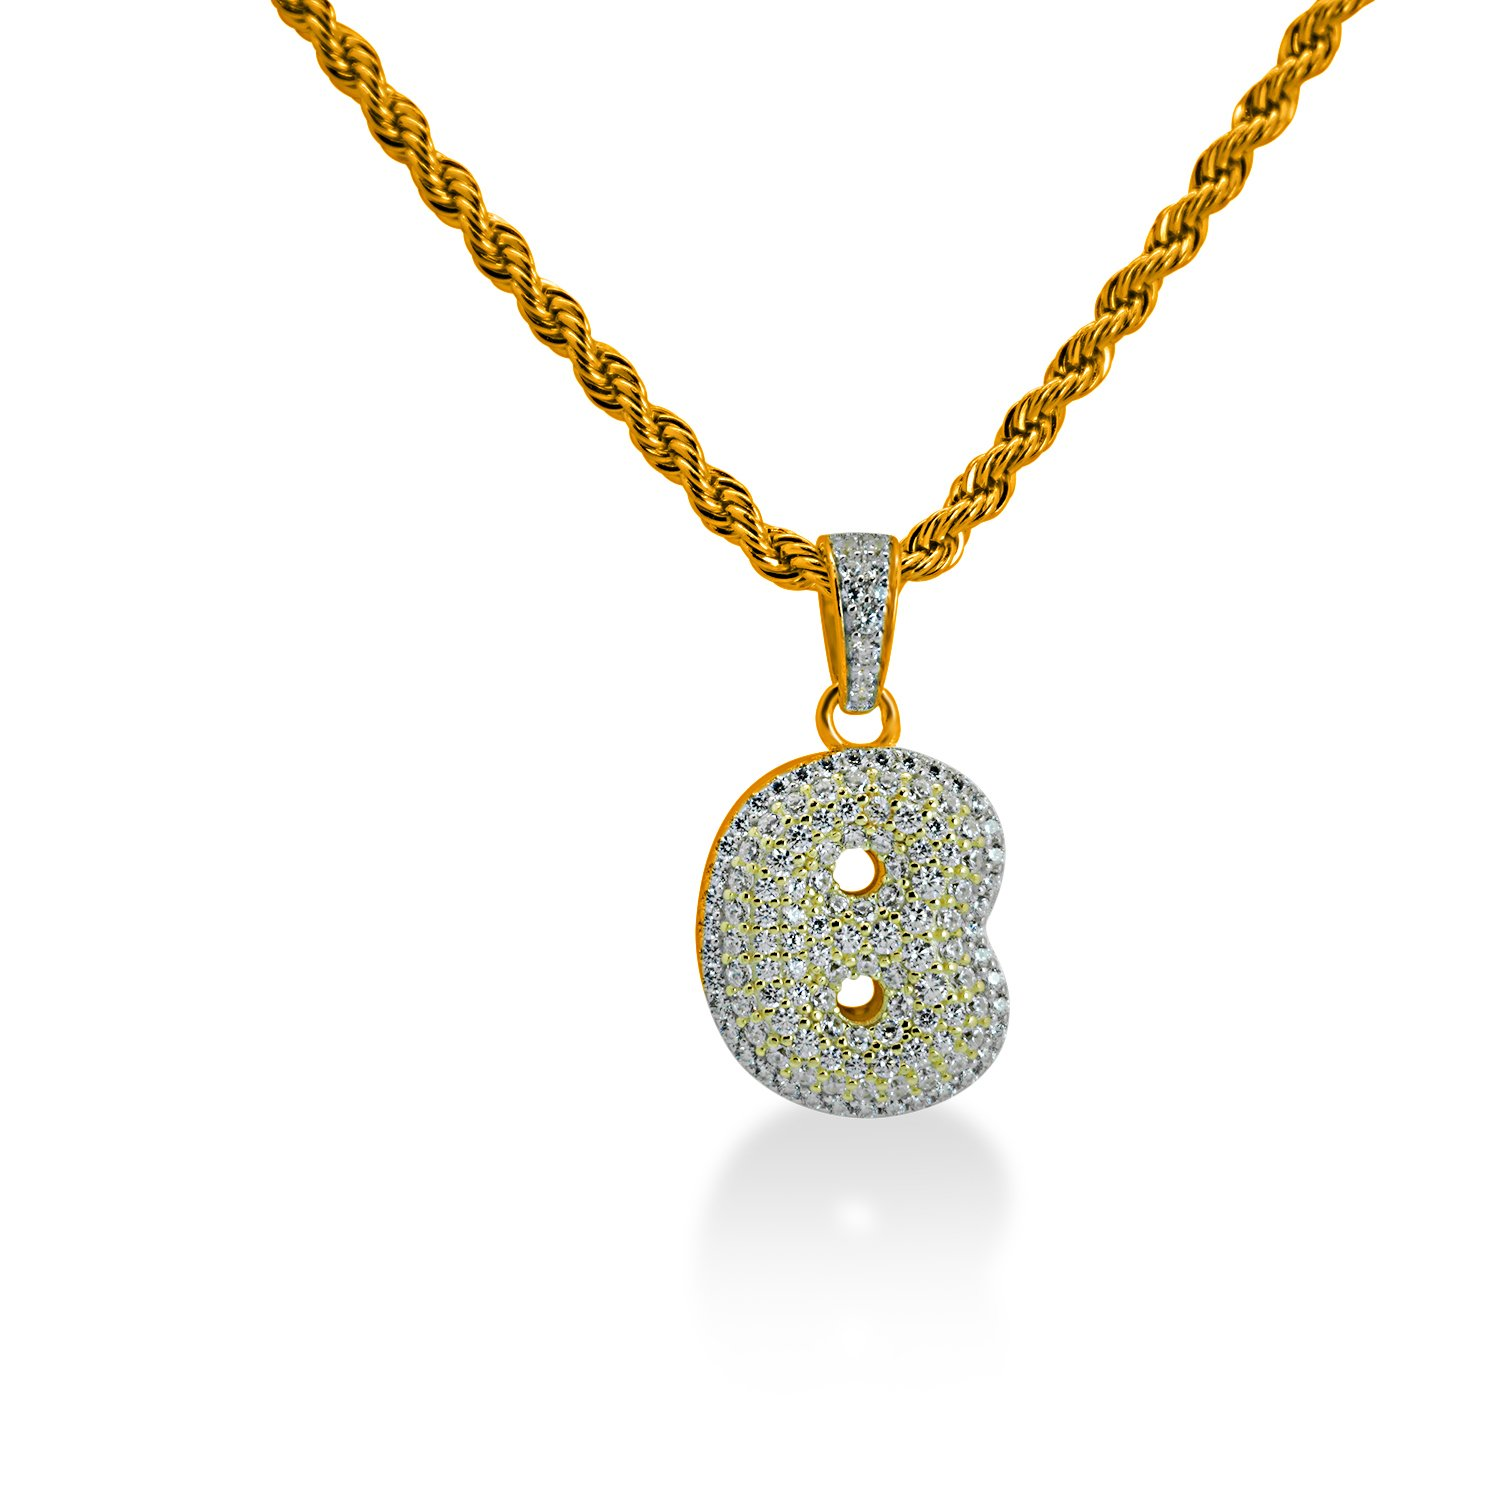 925 Sterling Silver Yellow Gold-Tone Iced Out Hip Hop Bling Bubble Alphabet Letter B Pendant with 24 Rope Chain